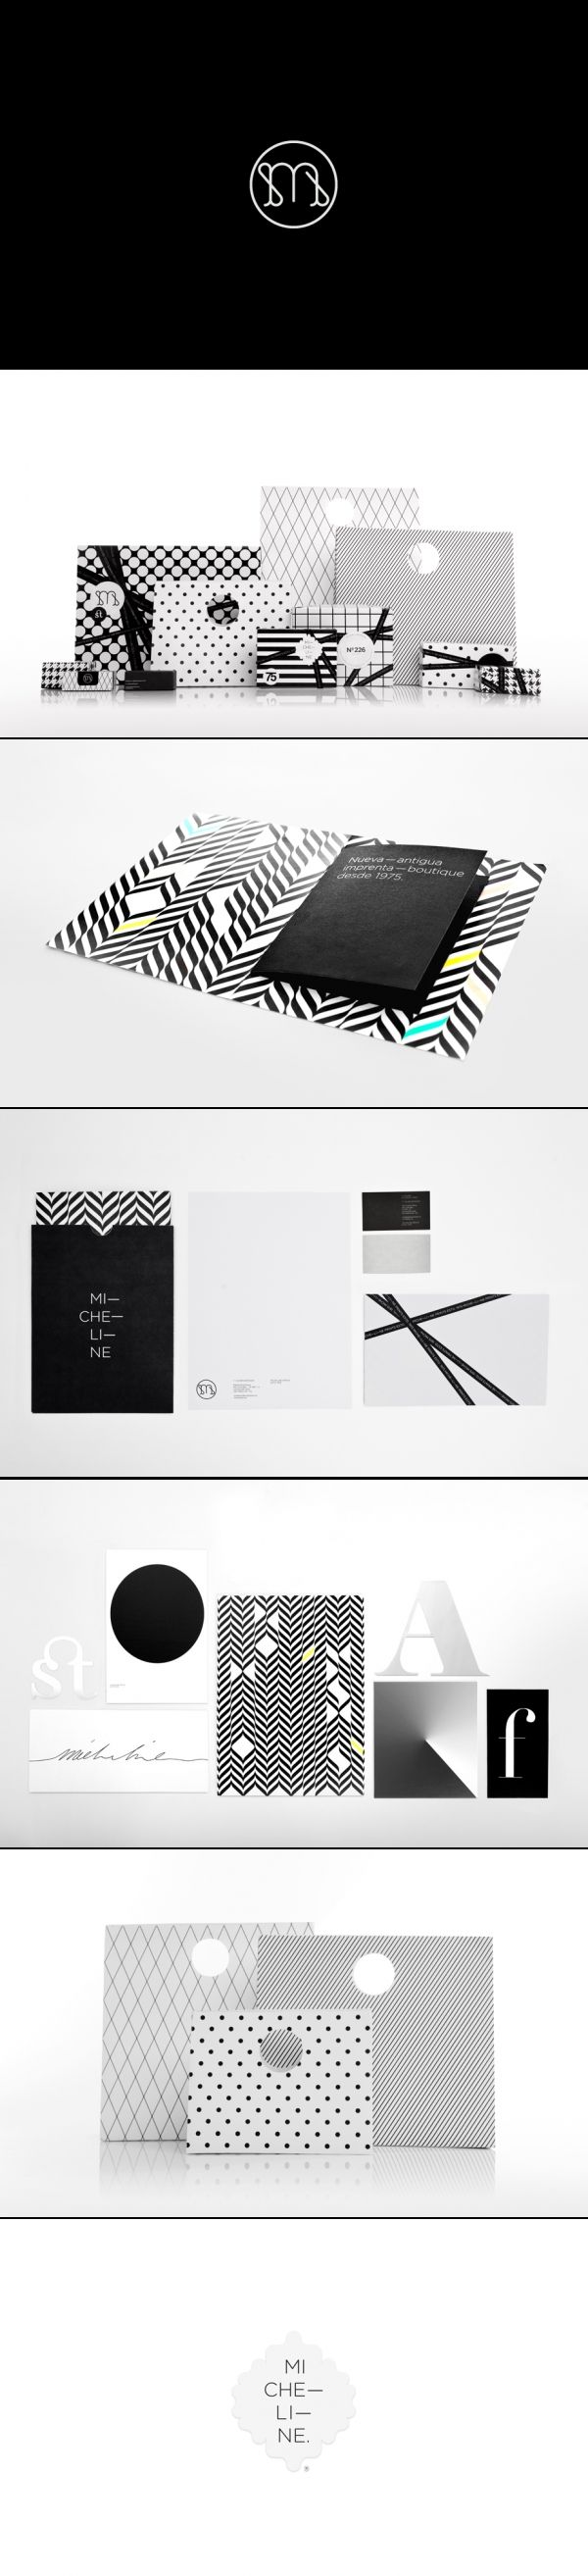 Micheline | Anagrama stellar in black and white #packaging #branding PD